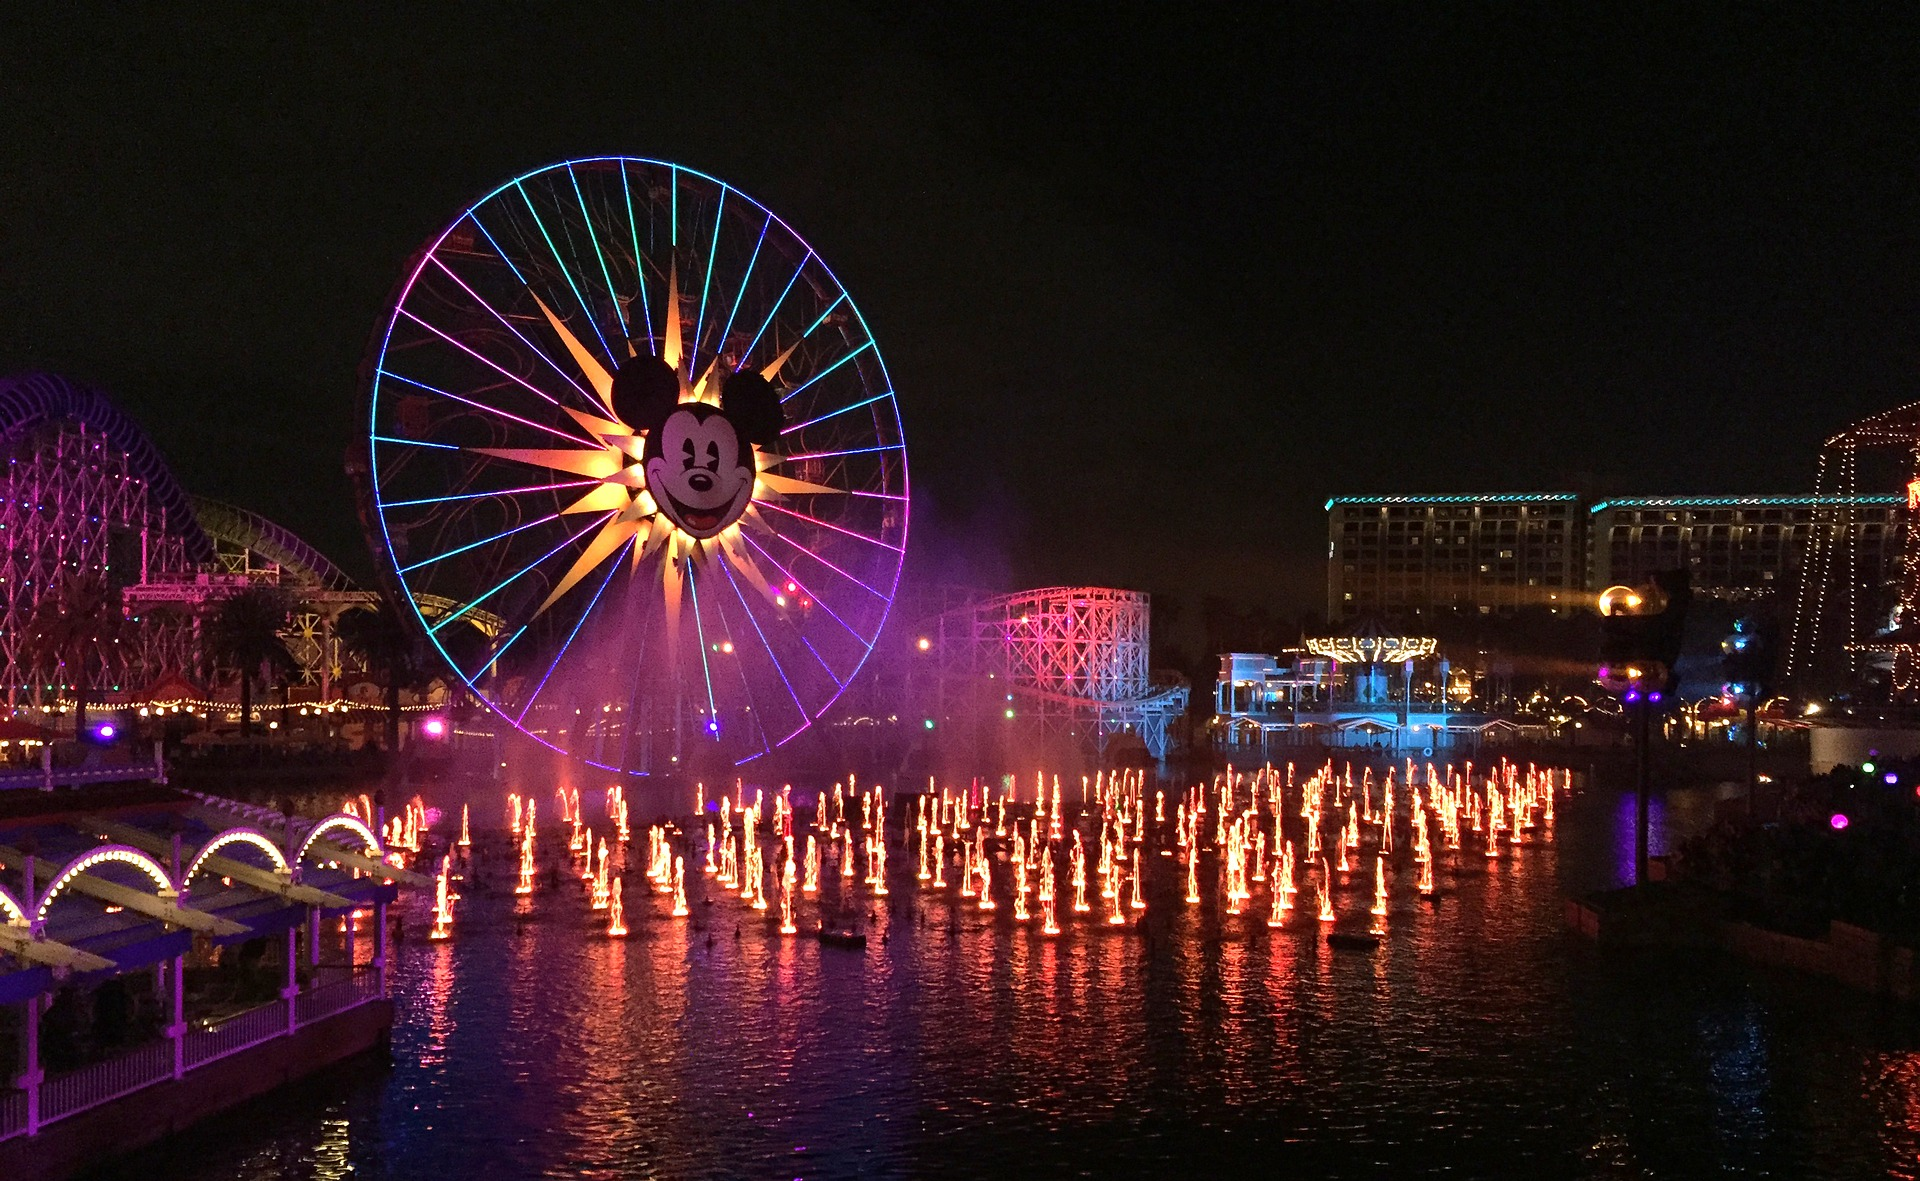 Could a ferris wheel ride with Mickey Mouse be one of the scariest rides at Disney?